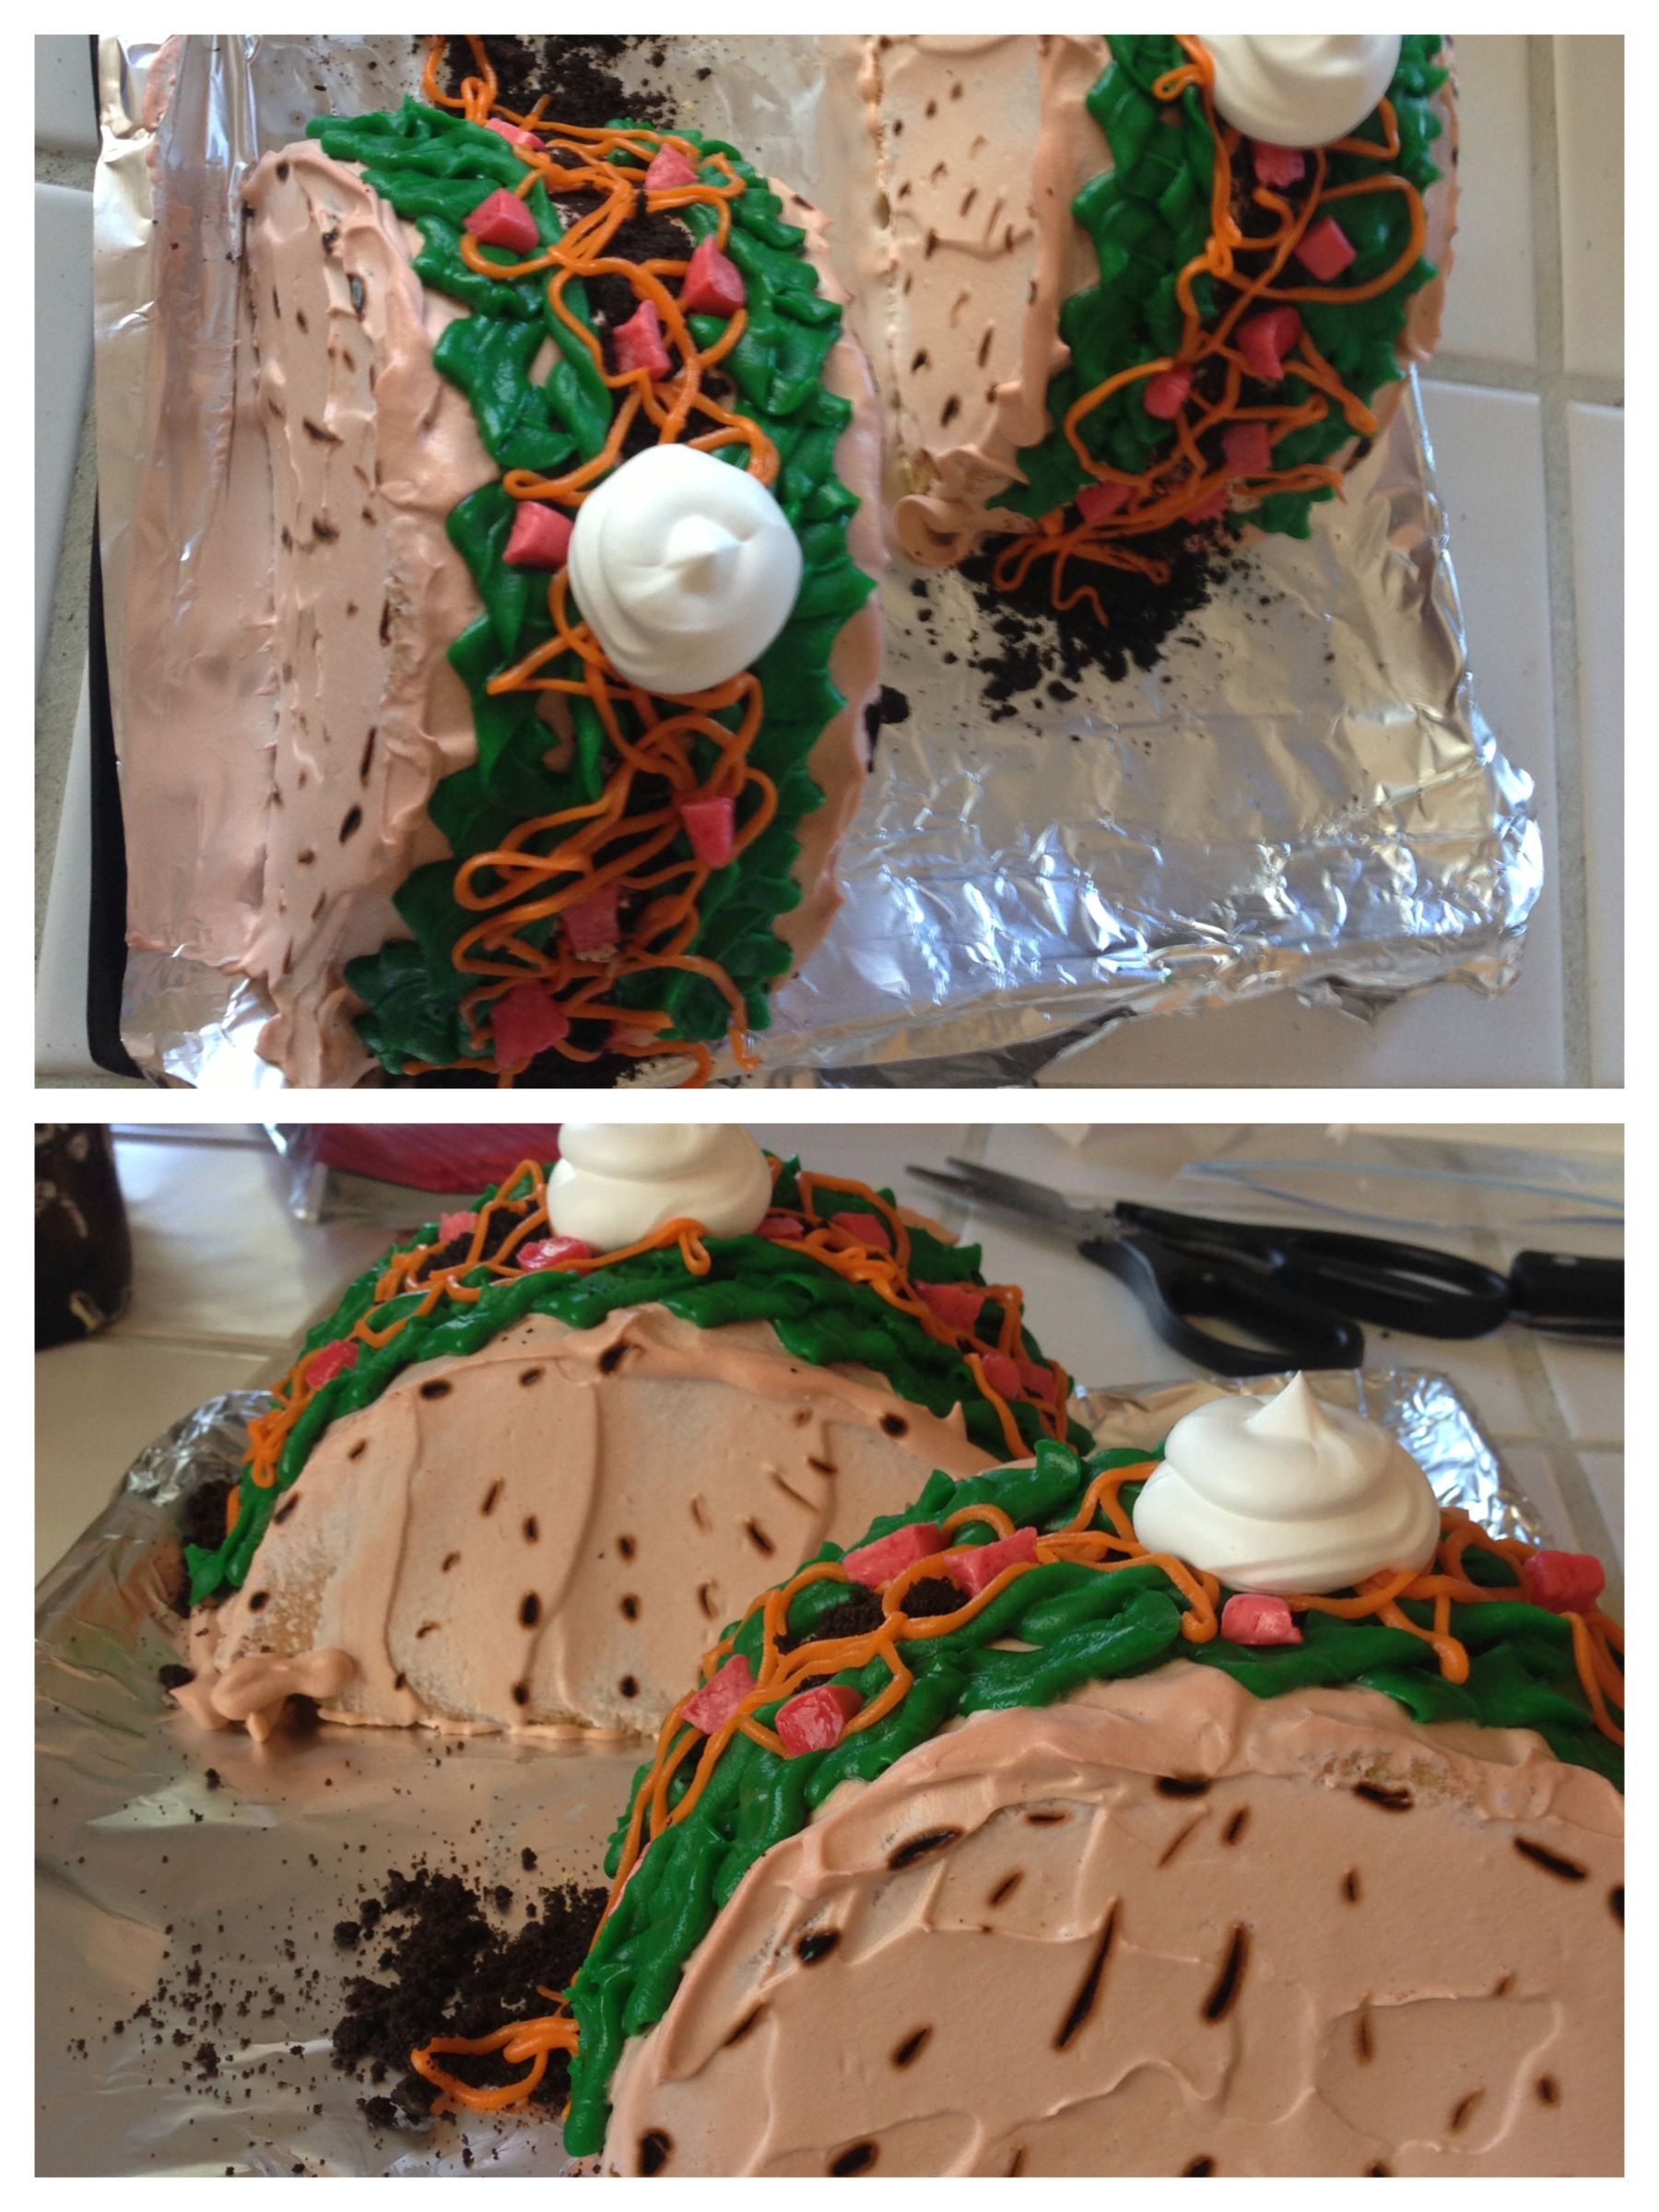 Made him a taco cake for his birthday birthday